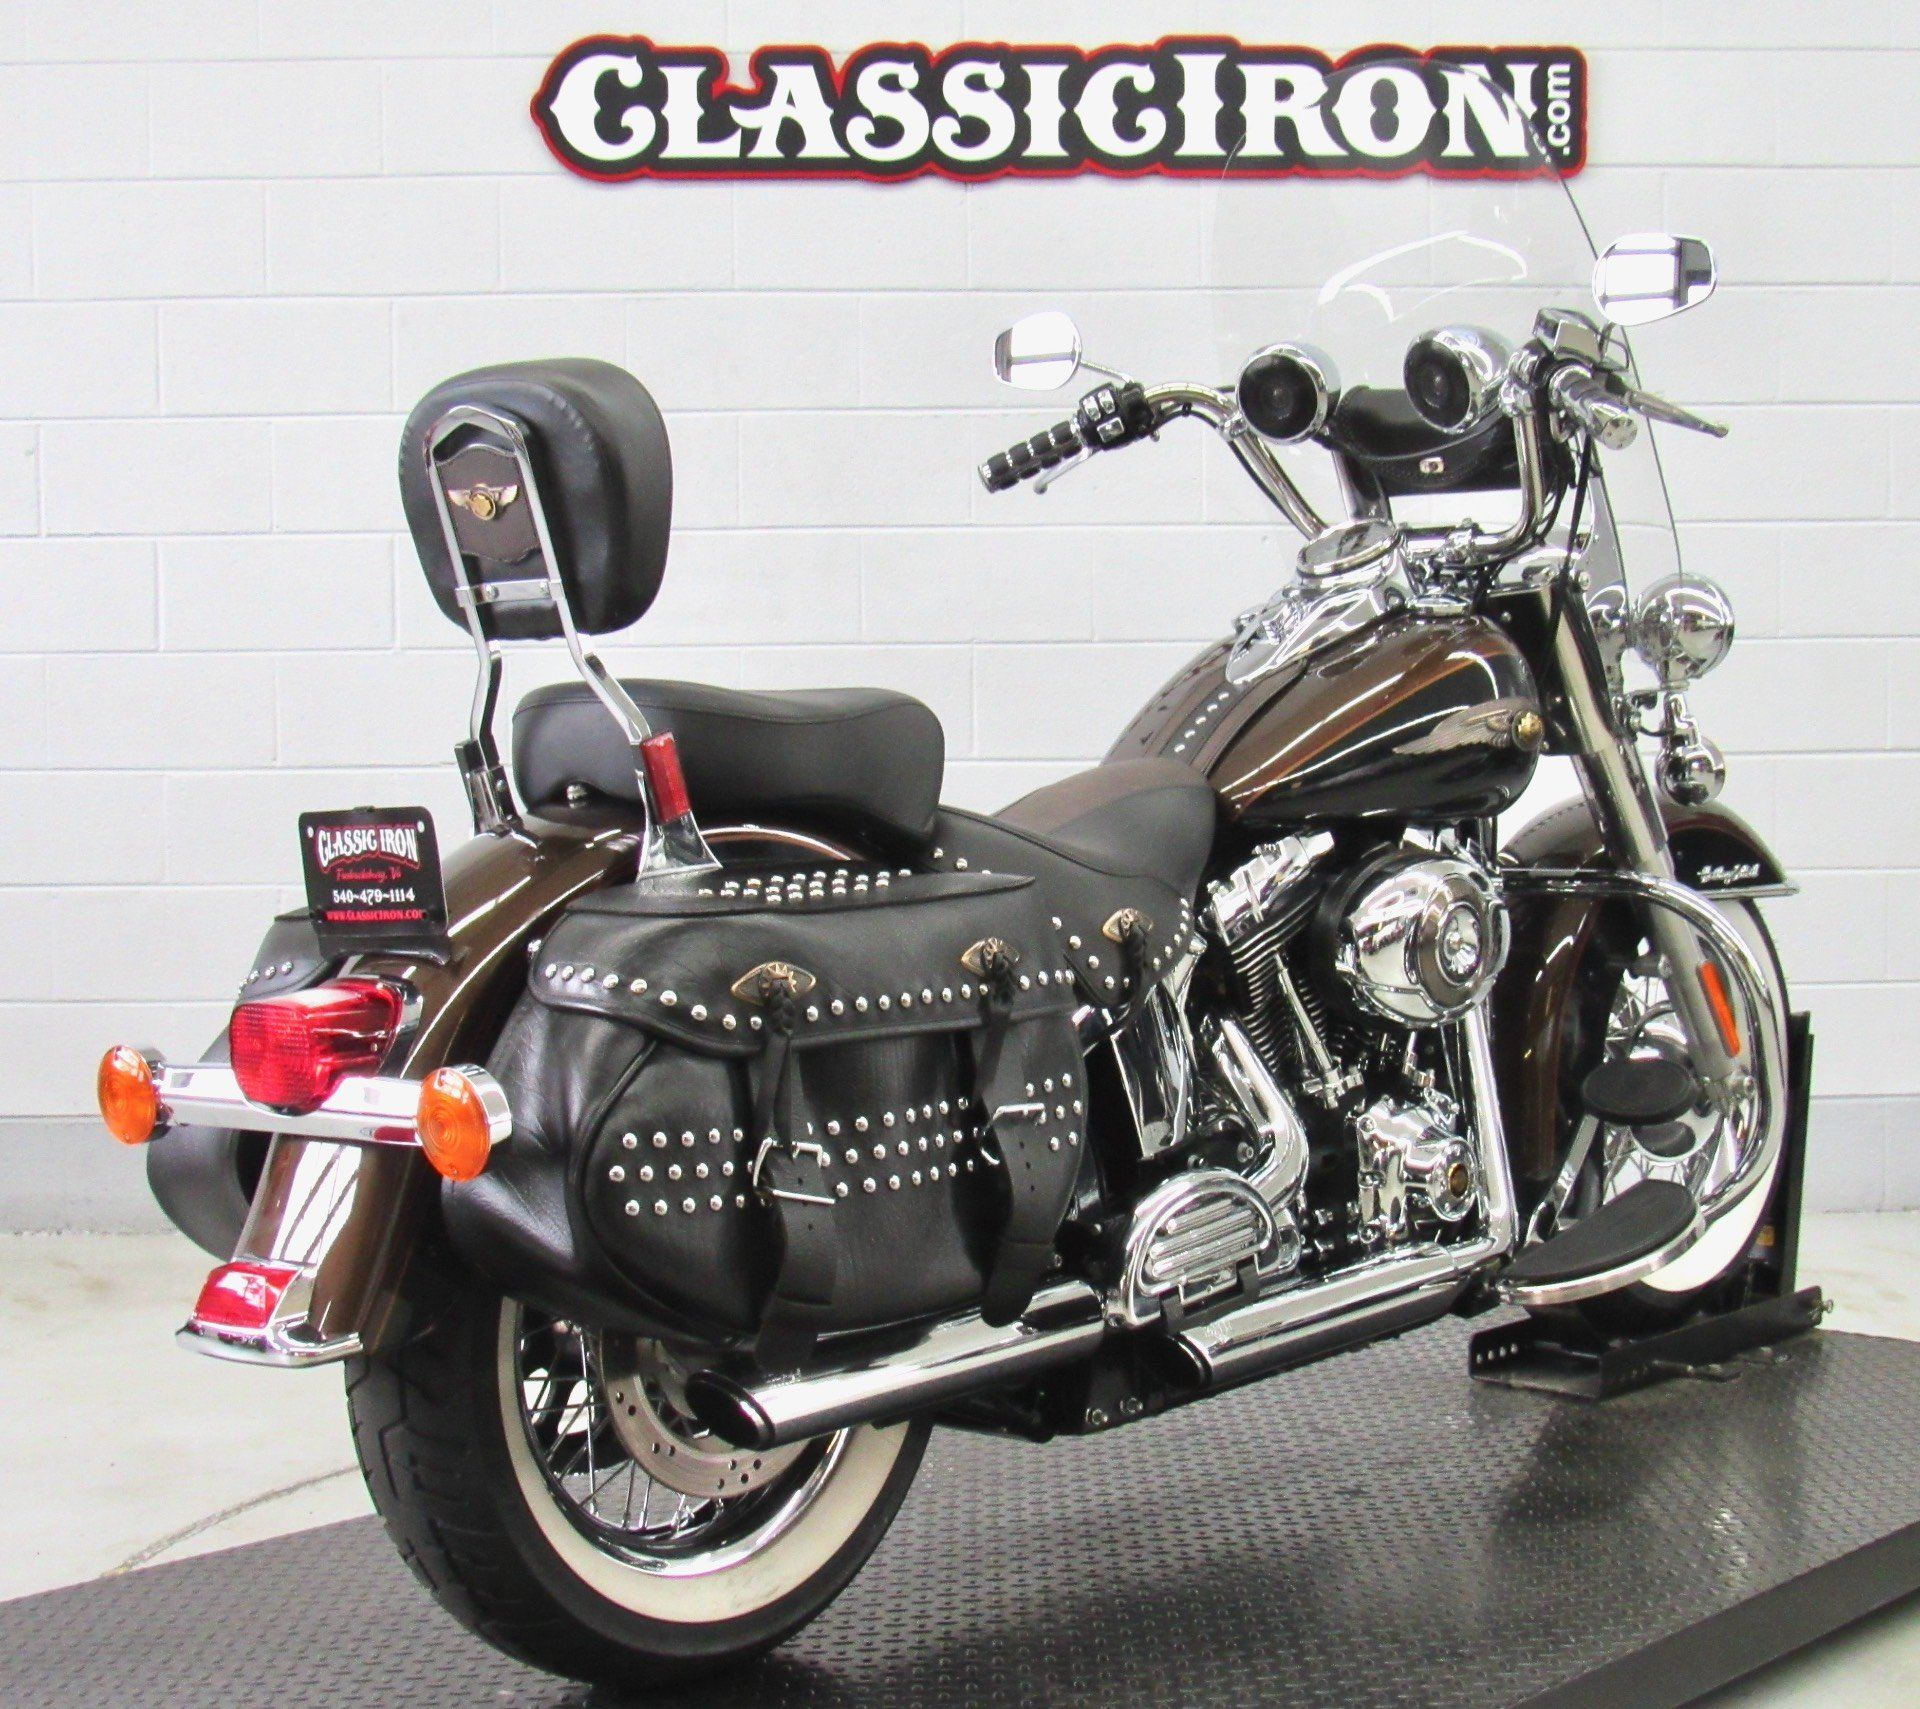 2013 Harley-Davidson Heritage Softail® Classic 110th Anniversary Edition in Fredericksburg, Virginia - Photo 5